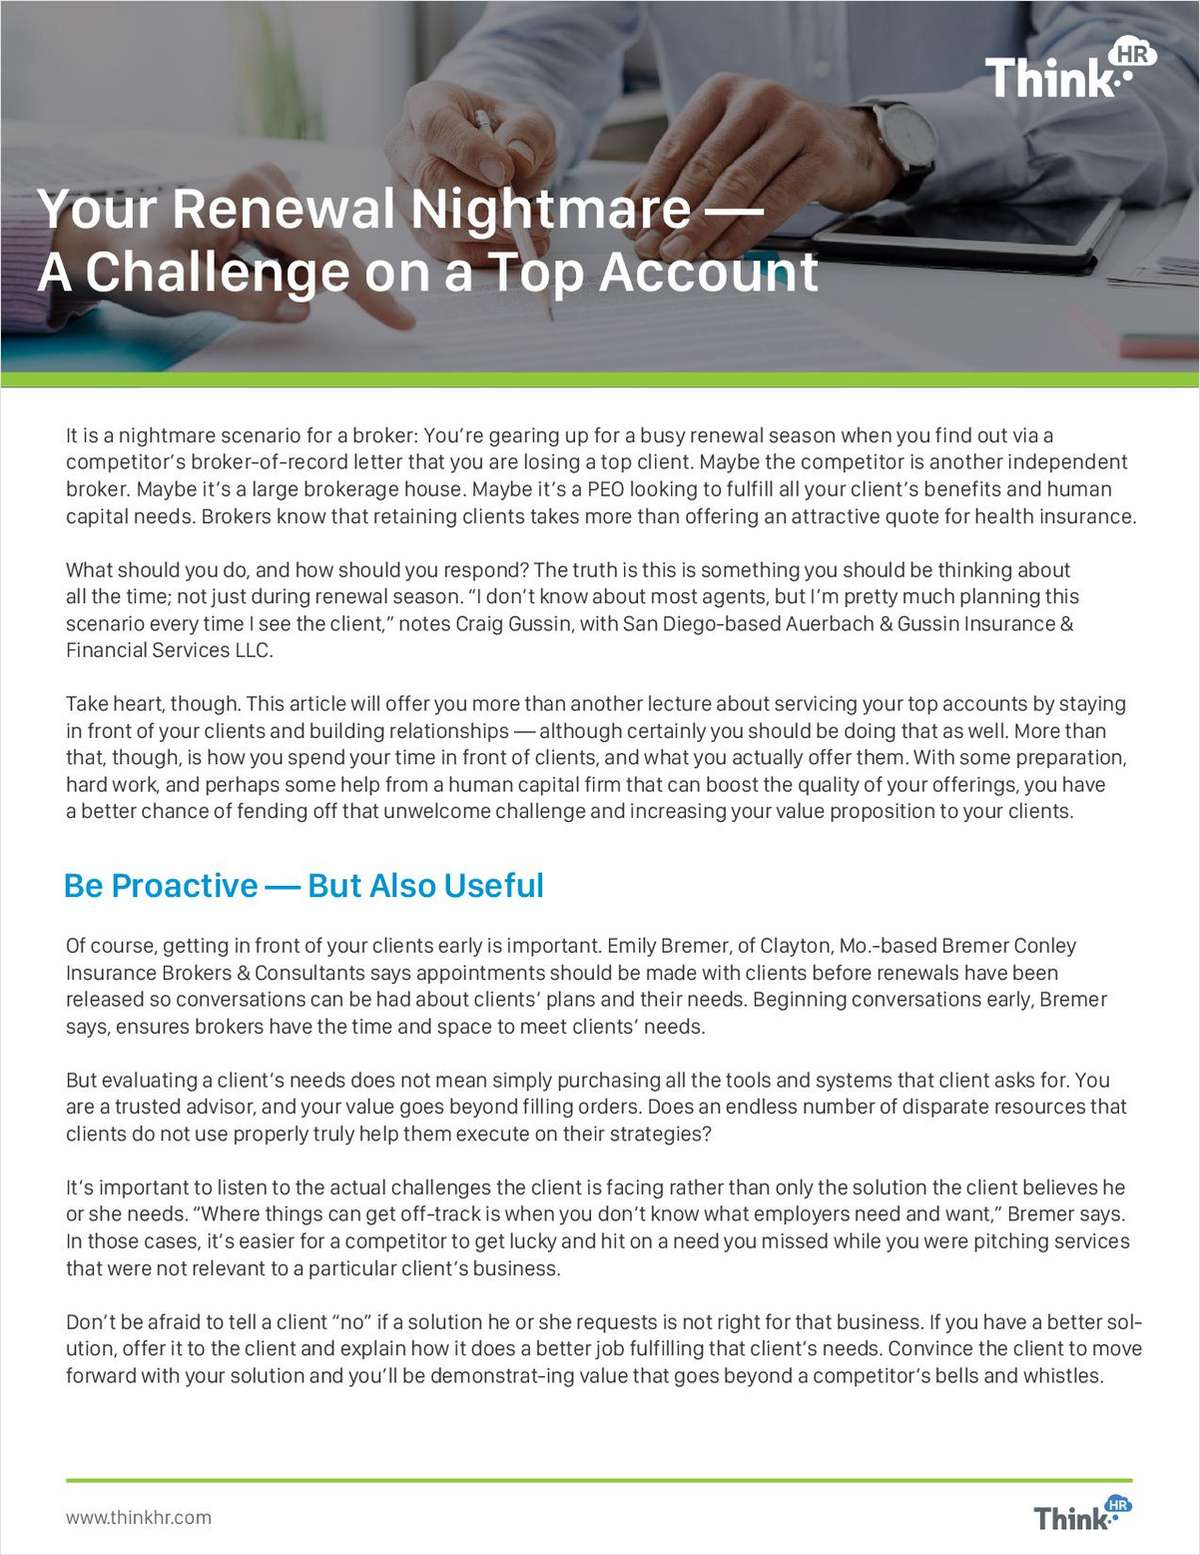 Your Renewal Nightmare: Losing a Top Client